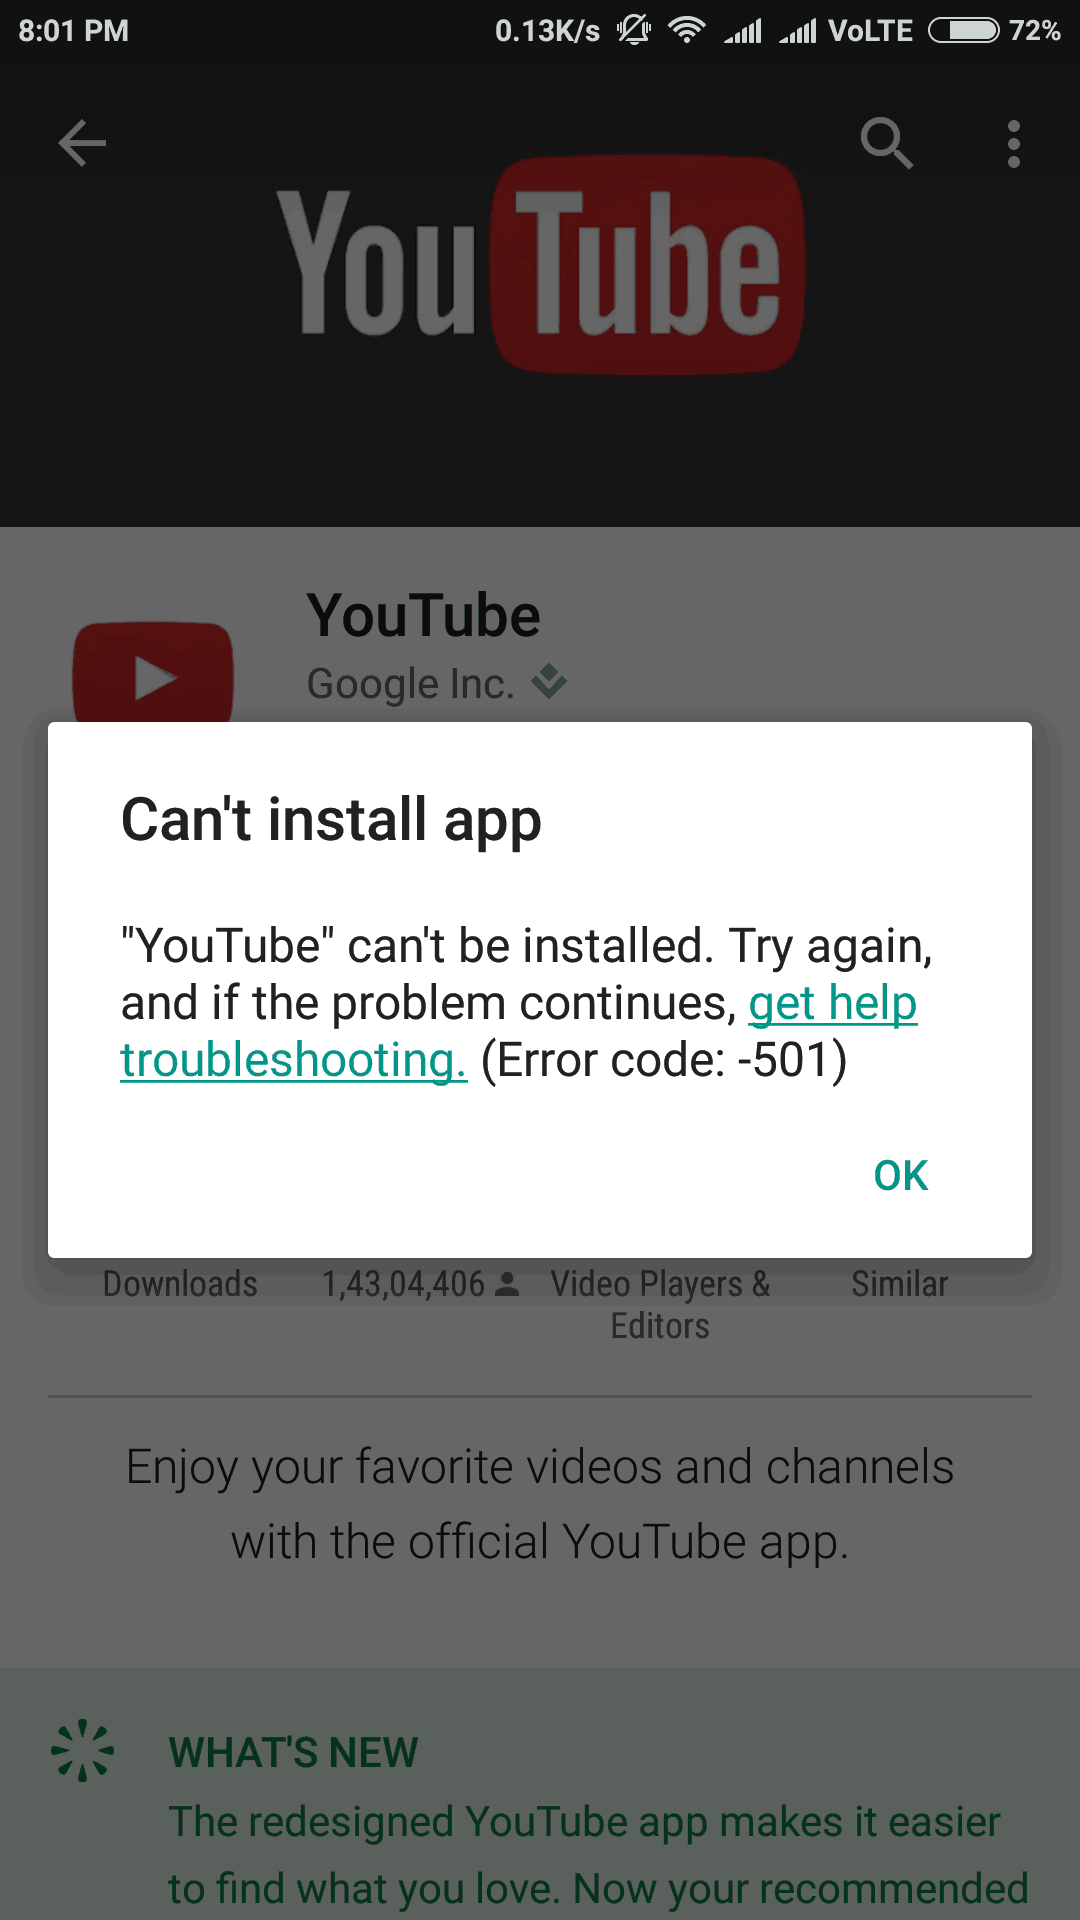 Fix Google Play Store Error -501 or YouTube Error 501 on Android